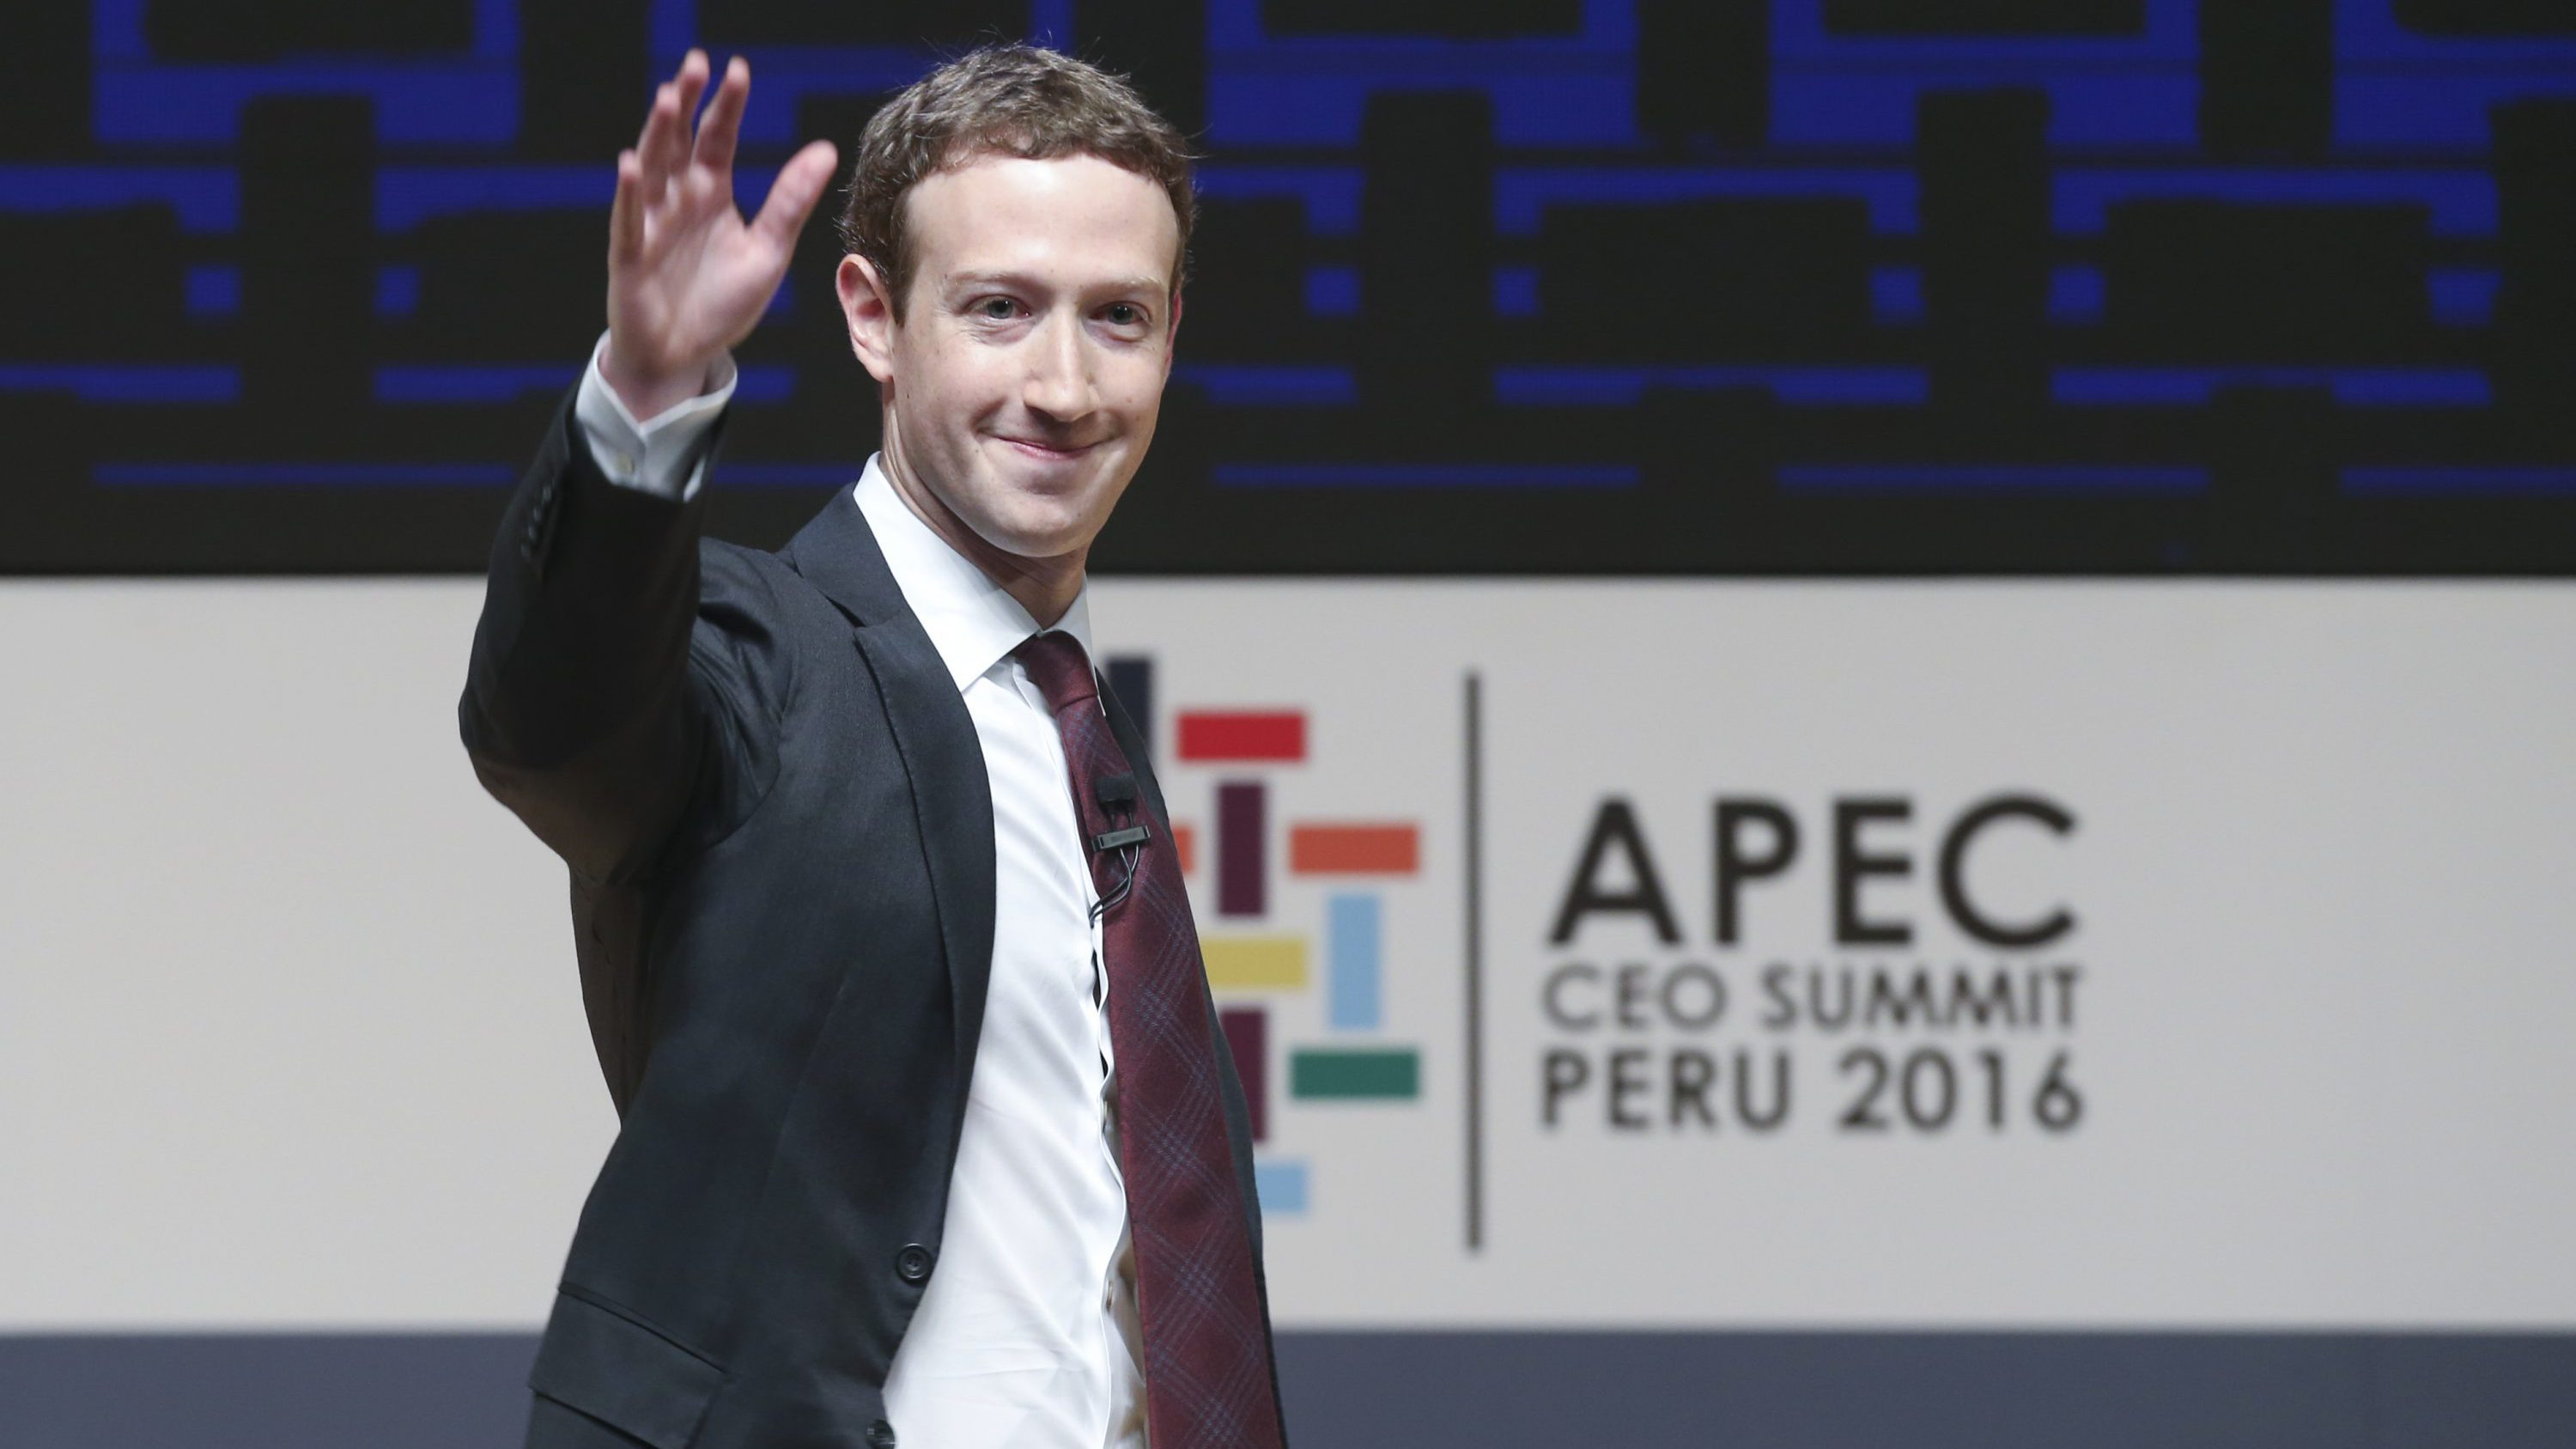 Mark Zuckerberg, chairman and CEO of Facebook, at the CEO summit during the annual Asia Pacific Economic Cooperation (APEC) forum in Lima, Peru, Saturday, Nov. 19, 2016.